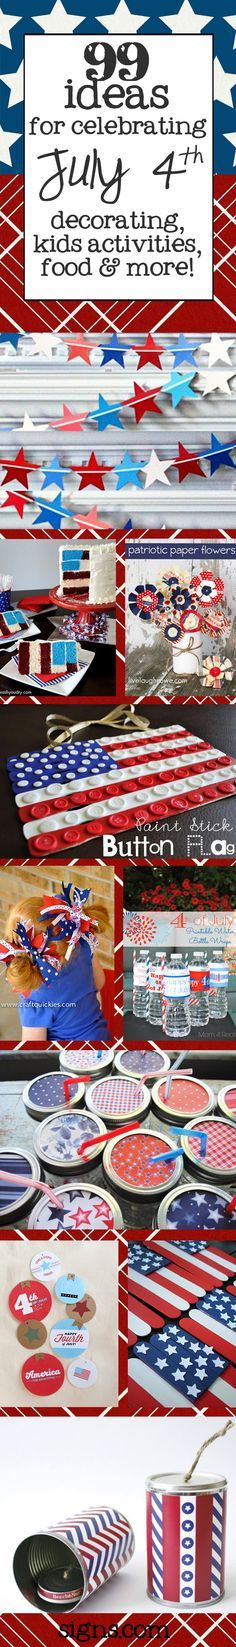 Check out these awesome 4th of July ideas for decorations, kids activities, and recipes #4thofjuly   www.signs.com